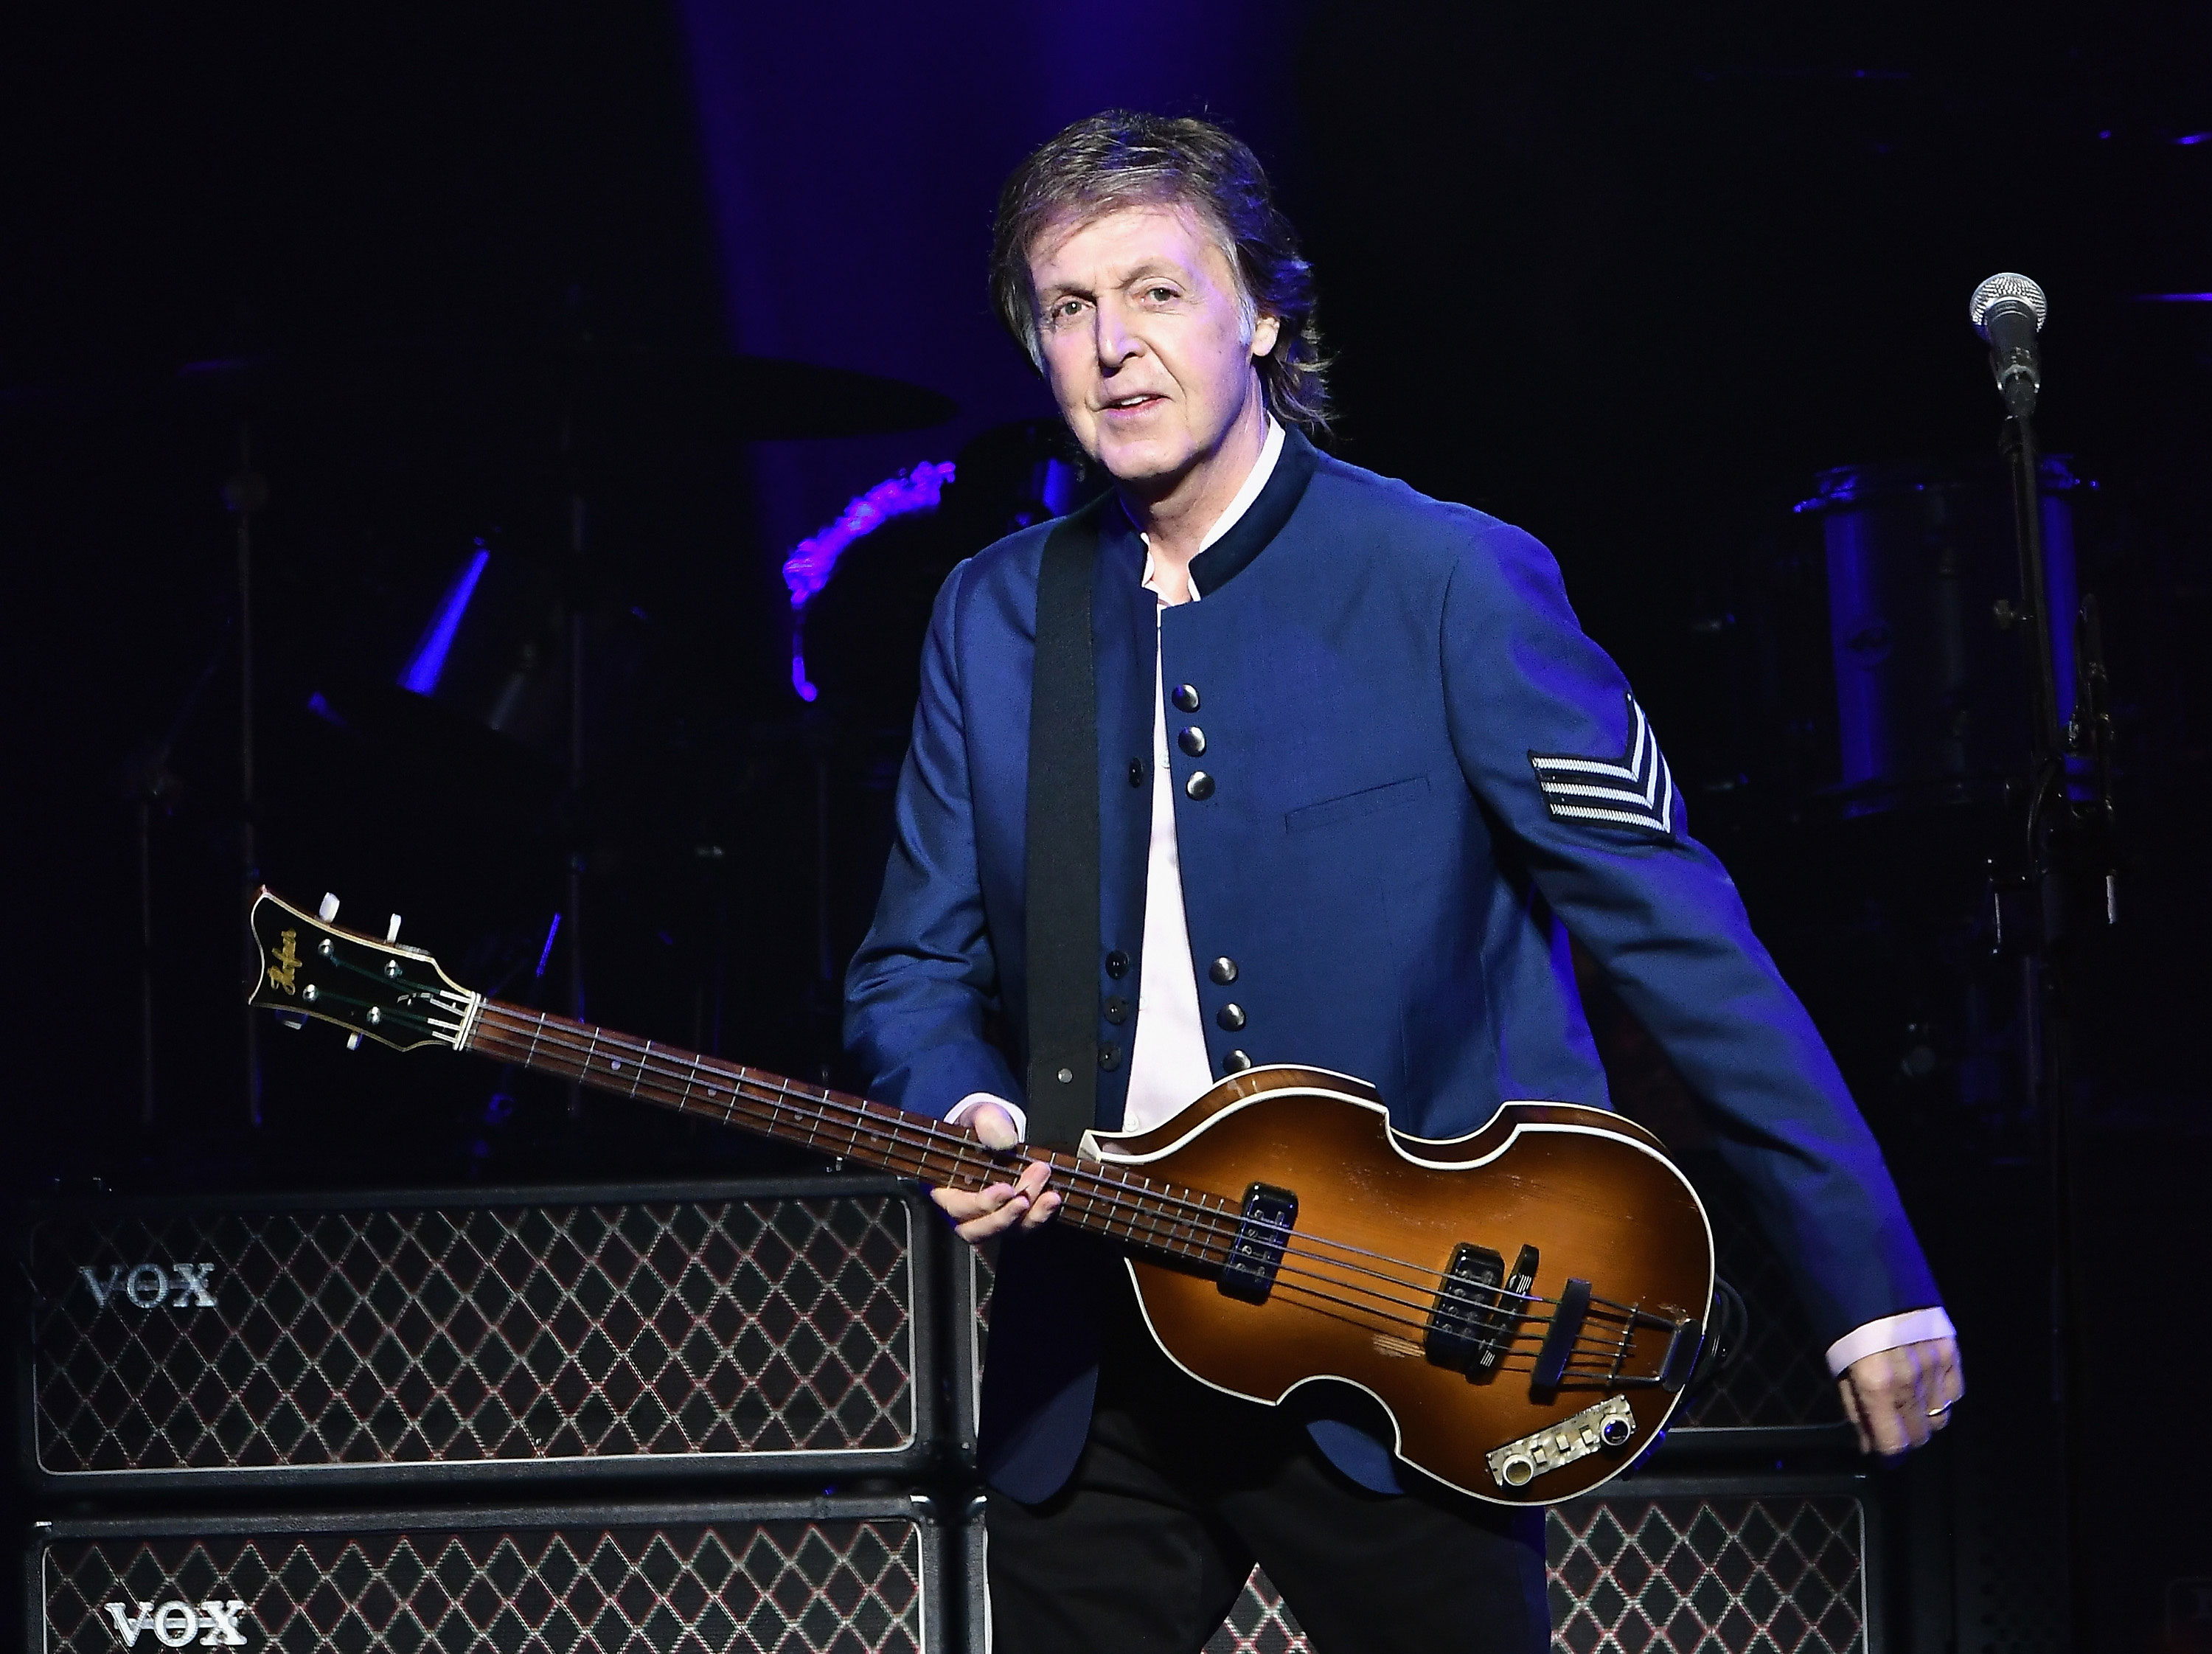 photos/17-paul-mccartney.jpg